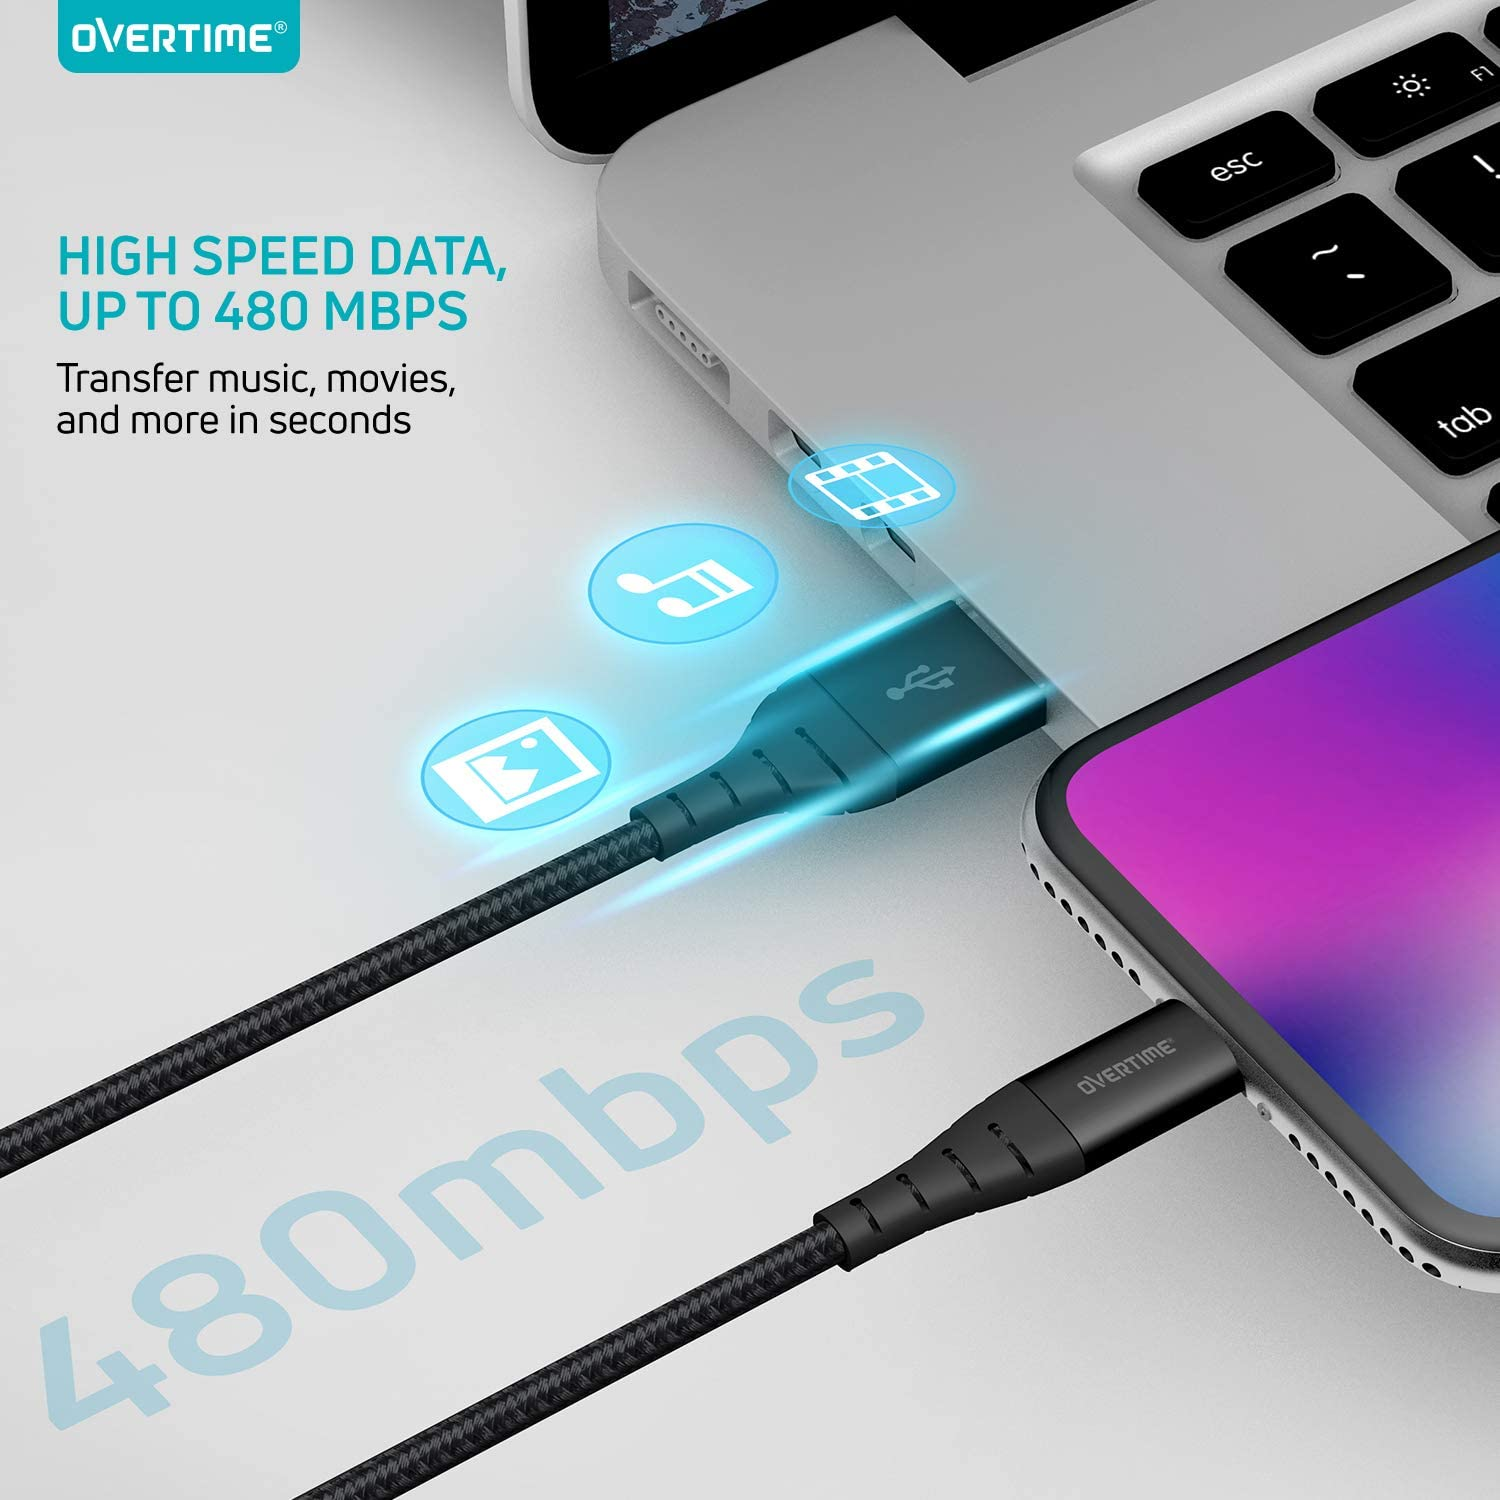 Apple MFi Certified Lightning Cable Rose Gold AirPods//Pro Braided Nylon High-Speed Cable for iPhone 11//11 Pro//11 Pro Max//X//XS//XR//XS Max//8//7//6//5S//SE iPad Mini//Air iPhone Charger 10ft